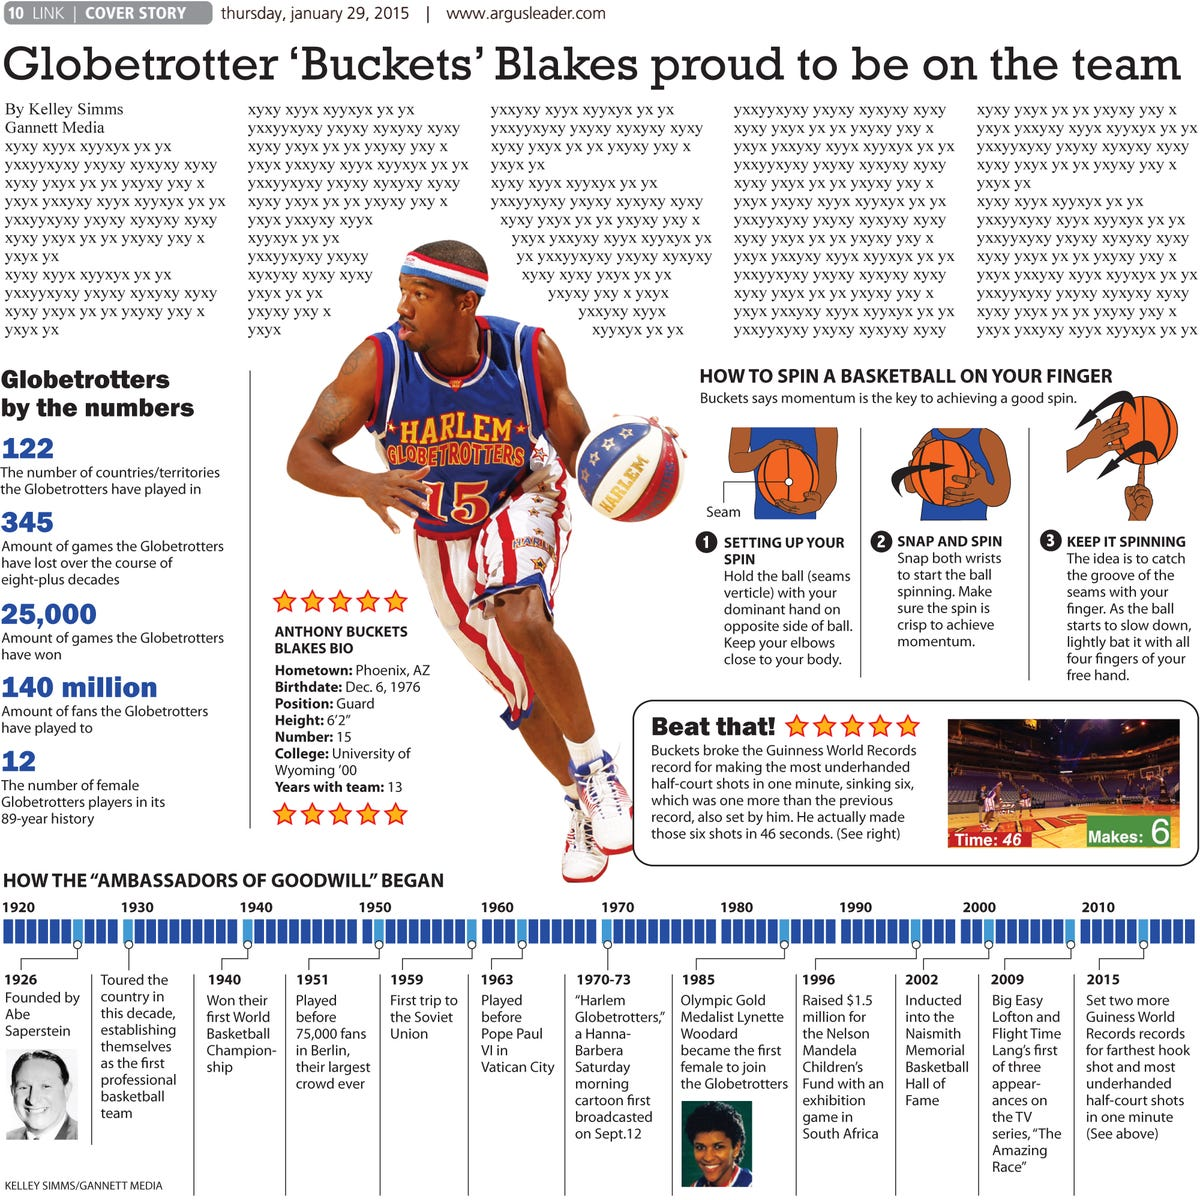 Globetrotters to visit Sioux Falls